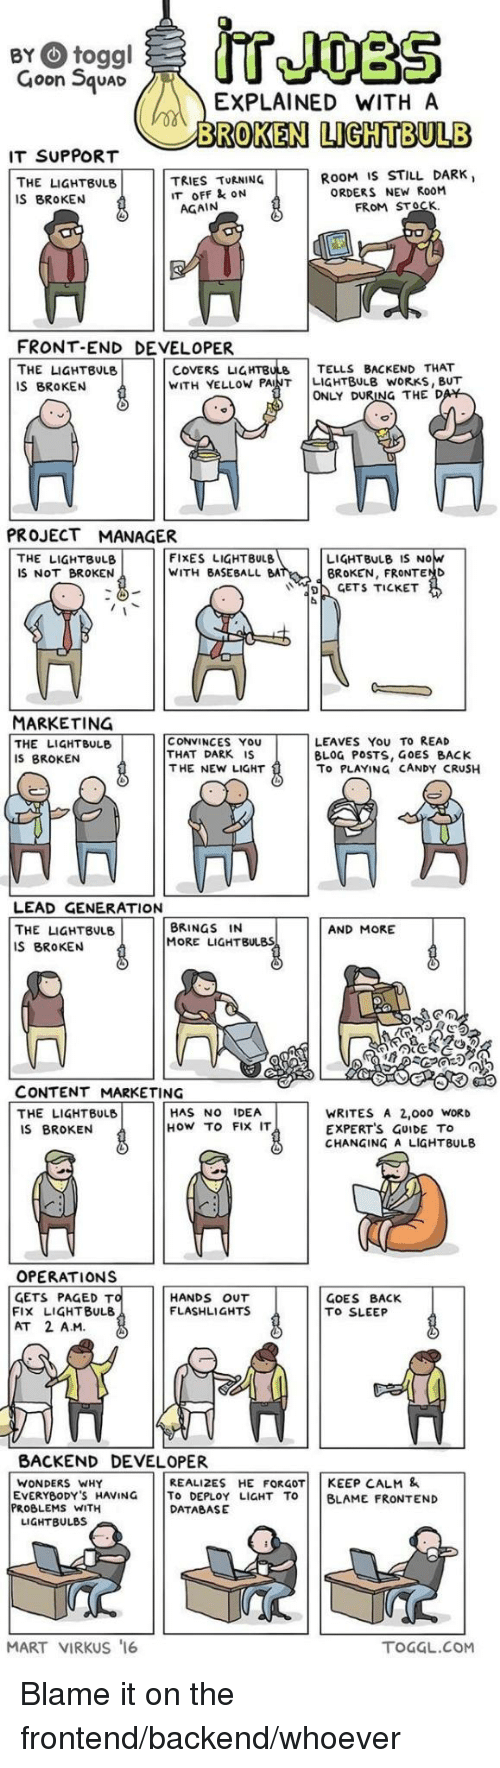 project manager: BY toggl  Goon SqUAD  EXPLAINED WITH A  BROKEN LIGHTBULB  IT SUPPORT  ROOM IS STILL DARK  THE LIGHTBULB  IS BROKEN  TRIES TURNING  IT OFF ON  ORDERS NEW RooM  AGAIN  FROM STO. :-  FRONT-END DEVELOPER  THE凵GHTBULB  IS BROKEN  COVERS LIGHTBUTELLS BACKEND THAT  WITH YELLOW PANT LIGHTBULB WORKS, BUT  ONLY DURING THE D  PROJECT MANAGER  THE LIGHTBULB  IS NOT BROKEN  FIXES LIGHTBULB  WITH BASEBALL BA  LIGHTBULB IS NO  BROKEN, FRONTEND  GETS TICKET  MARKETING  THE LIGHTBULB  IS BROKEN  CONVINCES YOU  THAT DARK IS  THE NEW LIGHT  LEAVES You To READ  BLOG POSTS, GOES BACK  To PLAYING CANDY CRUSH  肖11盒11曾角  LEAD GENERATION  THE LIGHTBULB  IS BROKEN  BRINGS IN  MORE LIGHTBULBS  AND MORE  CONTENT MARKETING  THE LIGHTBULB  IS BROKEN  HAS NO IDEA  How TO FIX IT  WRITES A 2,000 WORD  EXPERT'S GUIDE To  CHANGING A LIGHTBULB  OPERATIONS  GETS PAGED T  FIx LIGHTBULB  AT 2 A.M  HANDS OUT  FLASHLIGHTS  GOES BACK  TO SLEEP  BACKEND DEVELOPER  REALIZES HE FORGOT KEEP CALM &  WONDERS WHY  EVERYBODY'S HAVING To DEPLOY LIGHT TO BLAME FRONTEND  PROBLEMS WITH  LIGHTBULBS  DATABASE  MART VIRKUS 16  TOGGL.COM Blame it on the frontend/backend/whoever